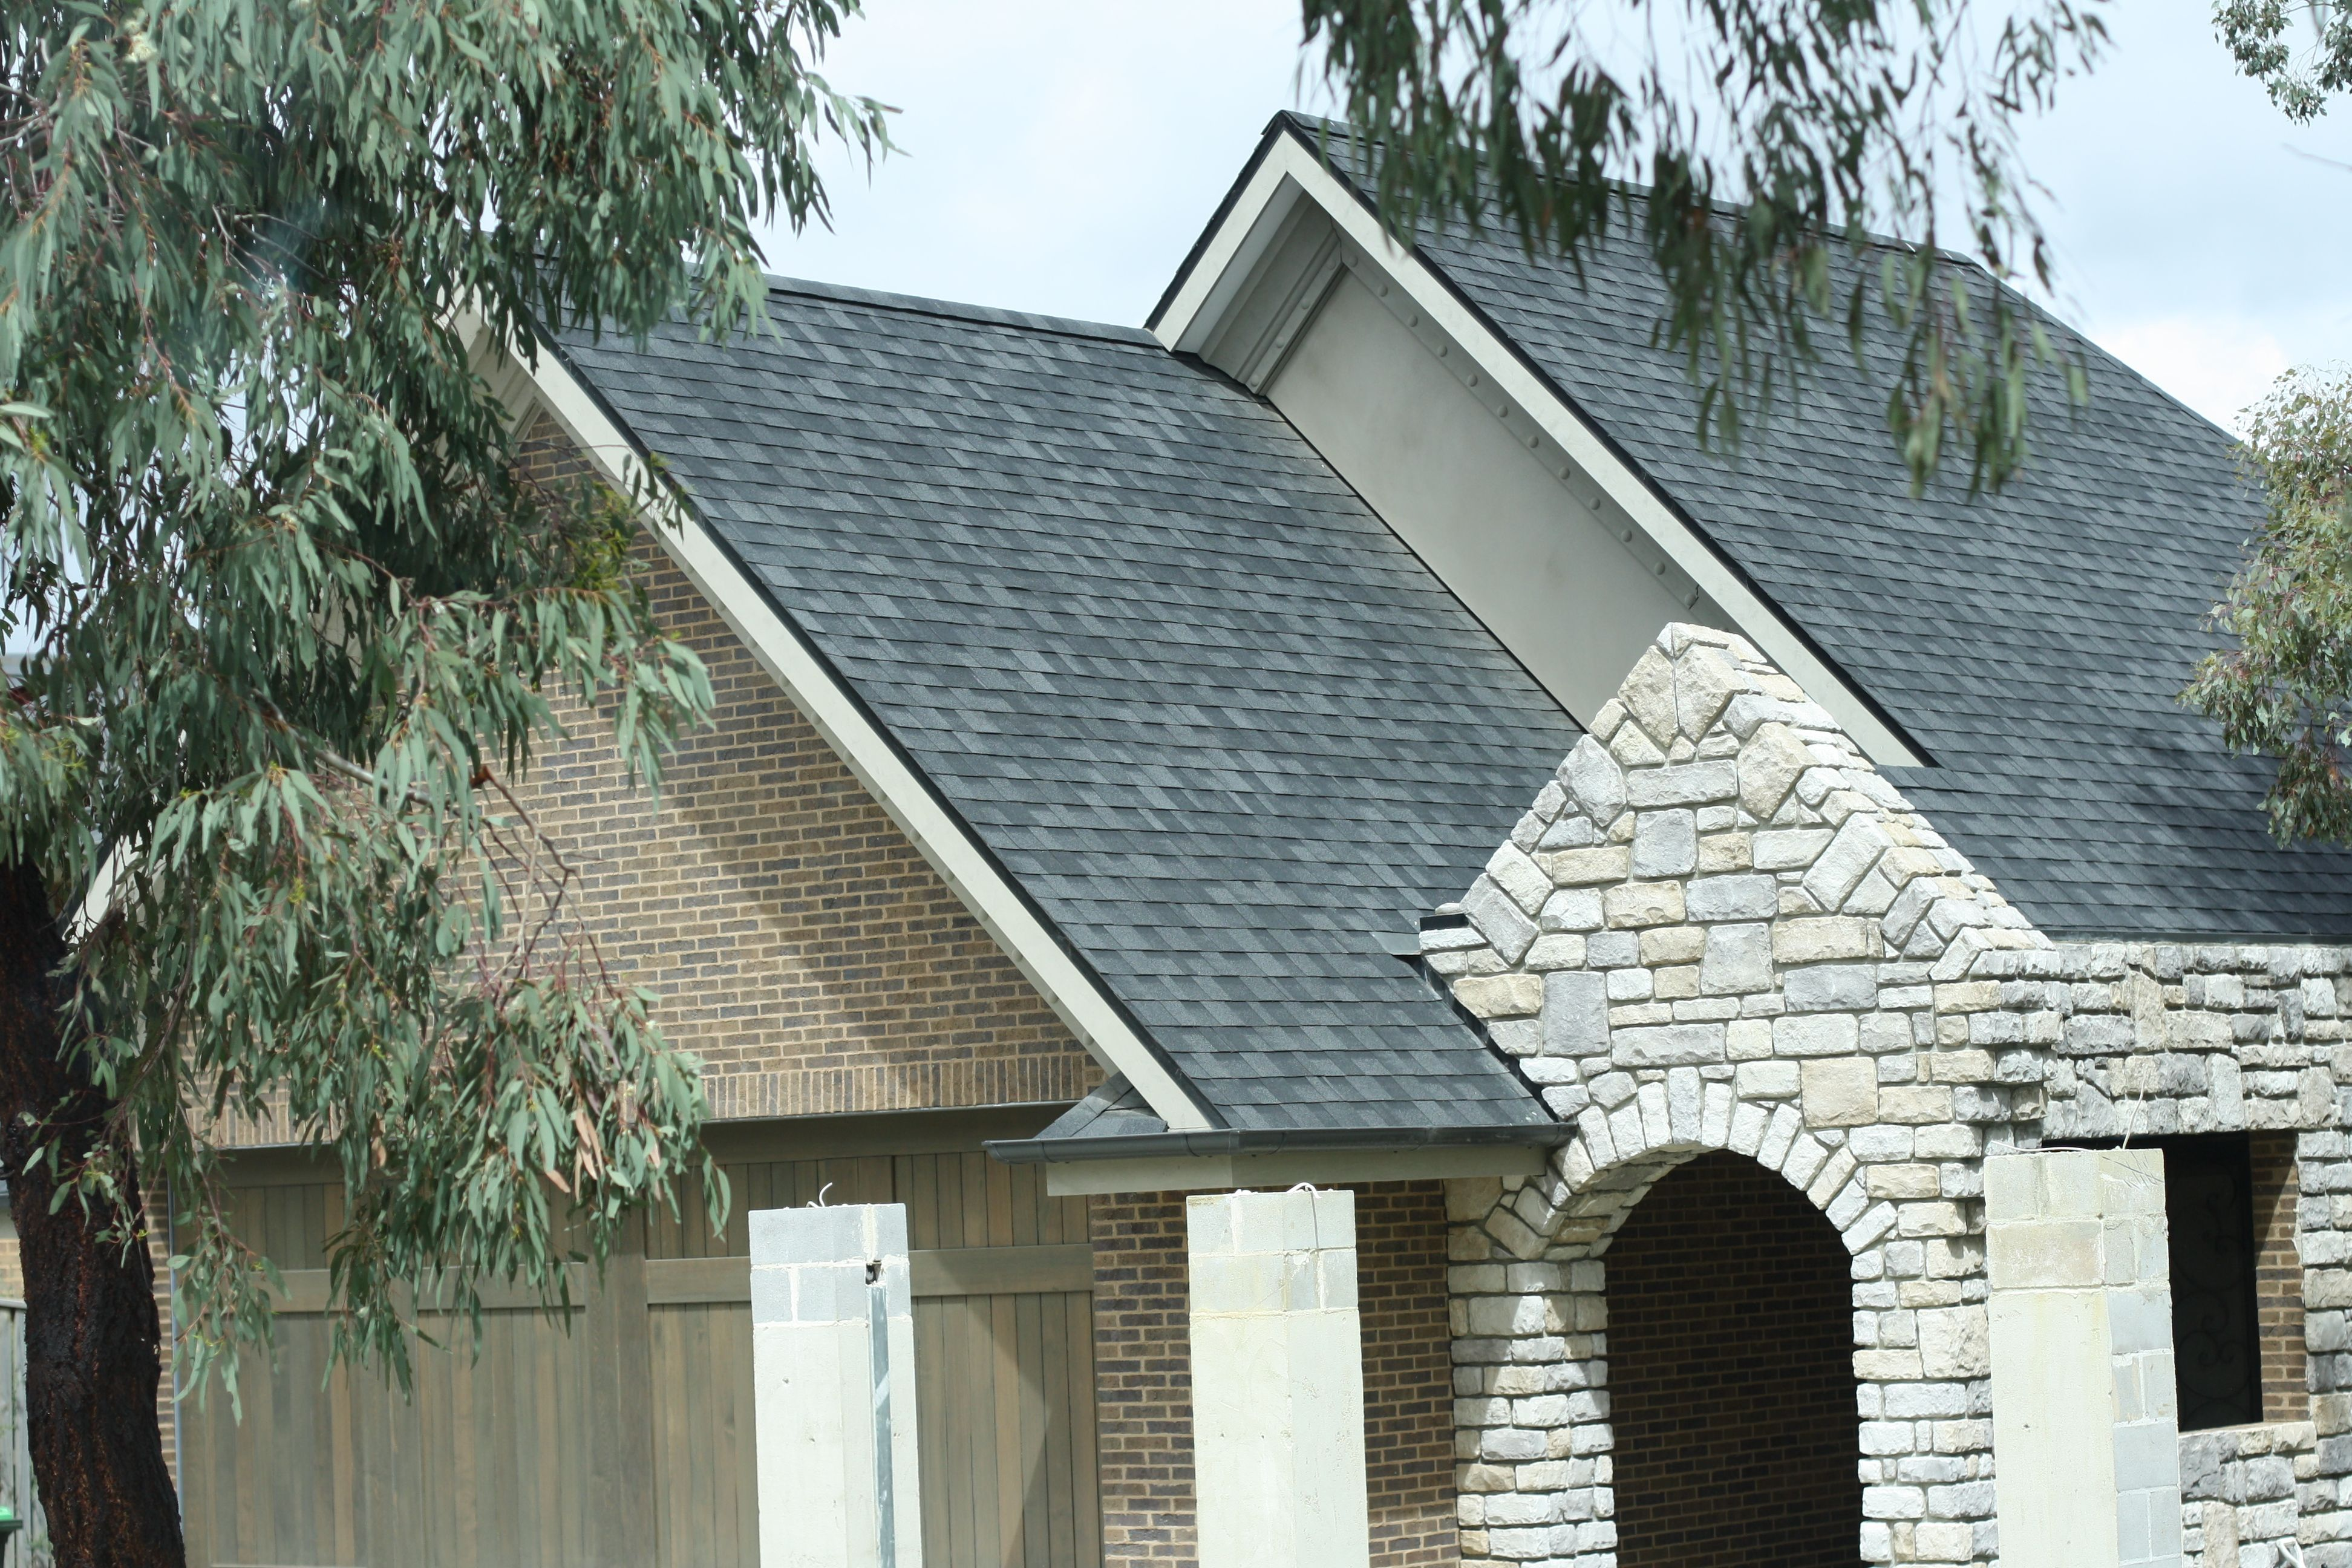 Asphalt Shingles Roofing Materials Roof Supplies Australia Asphalt Roof Shingles Roof Shingles Aluminum Roof